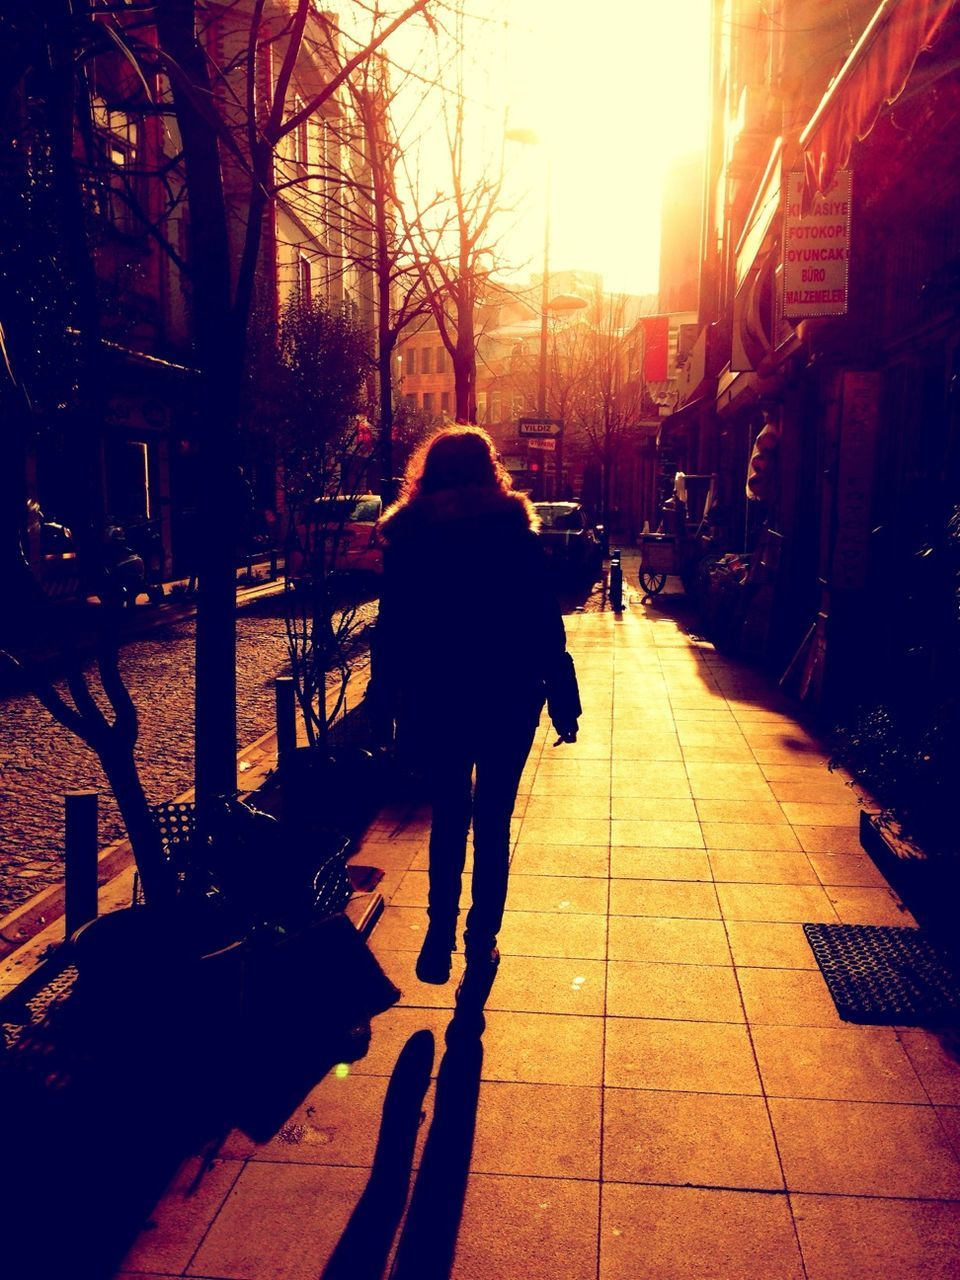 Rear View Of Woman Walking On Sidewalk During Sunset